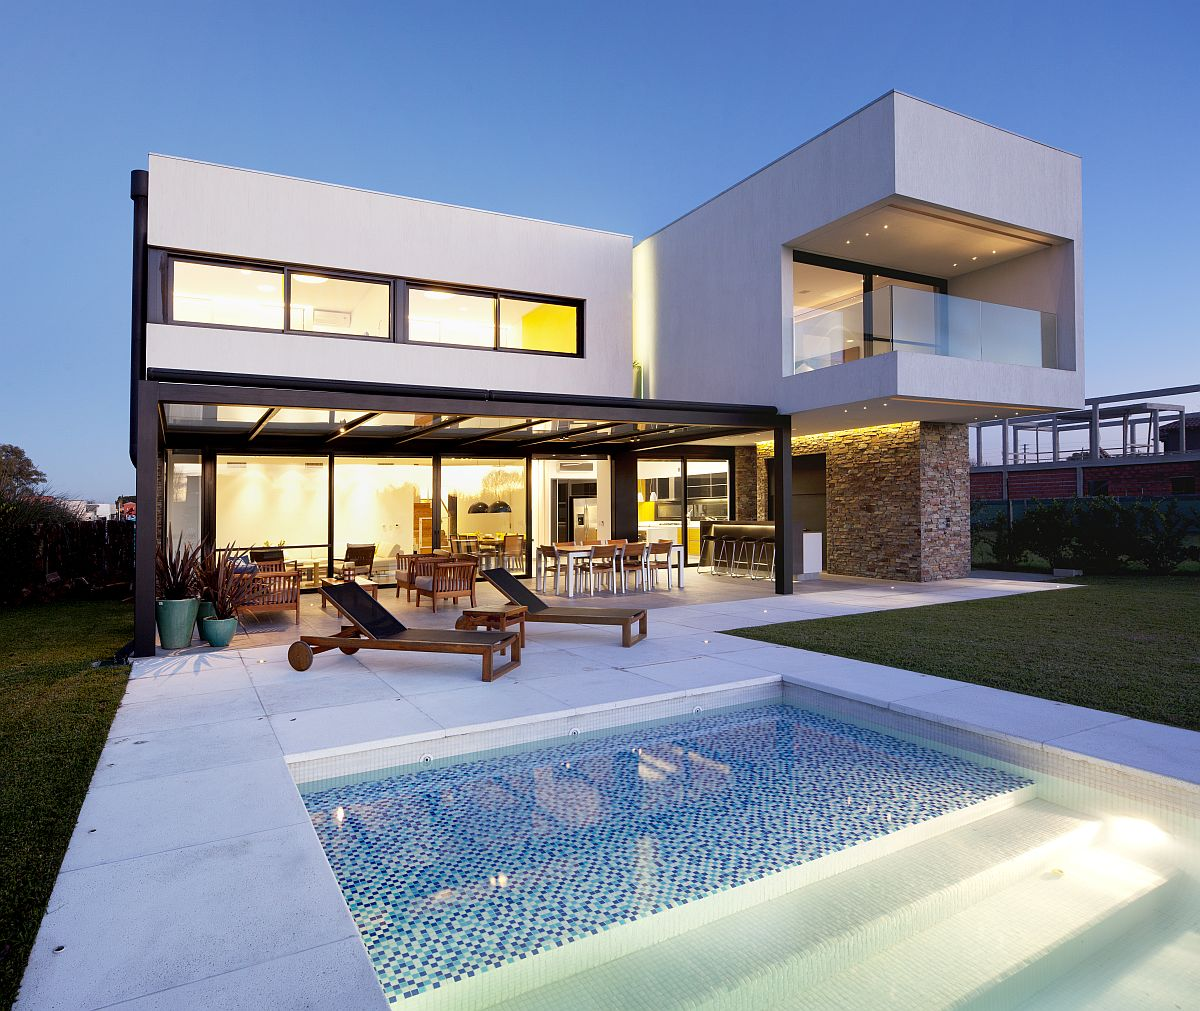 Ample-sitting-space-on-the-outside-provides-for-a-lovely-social-zone-64997